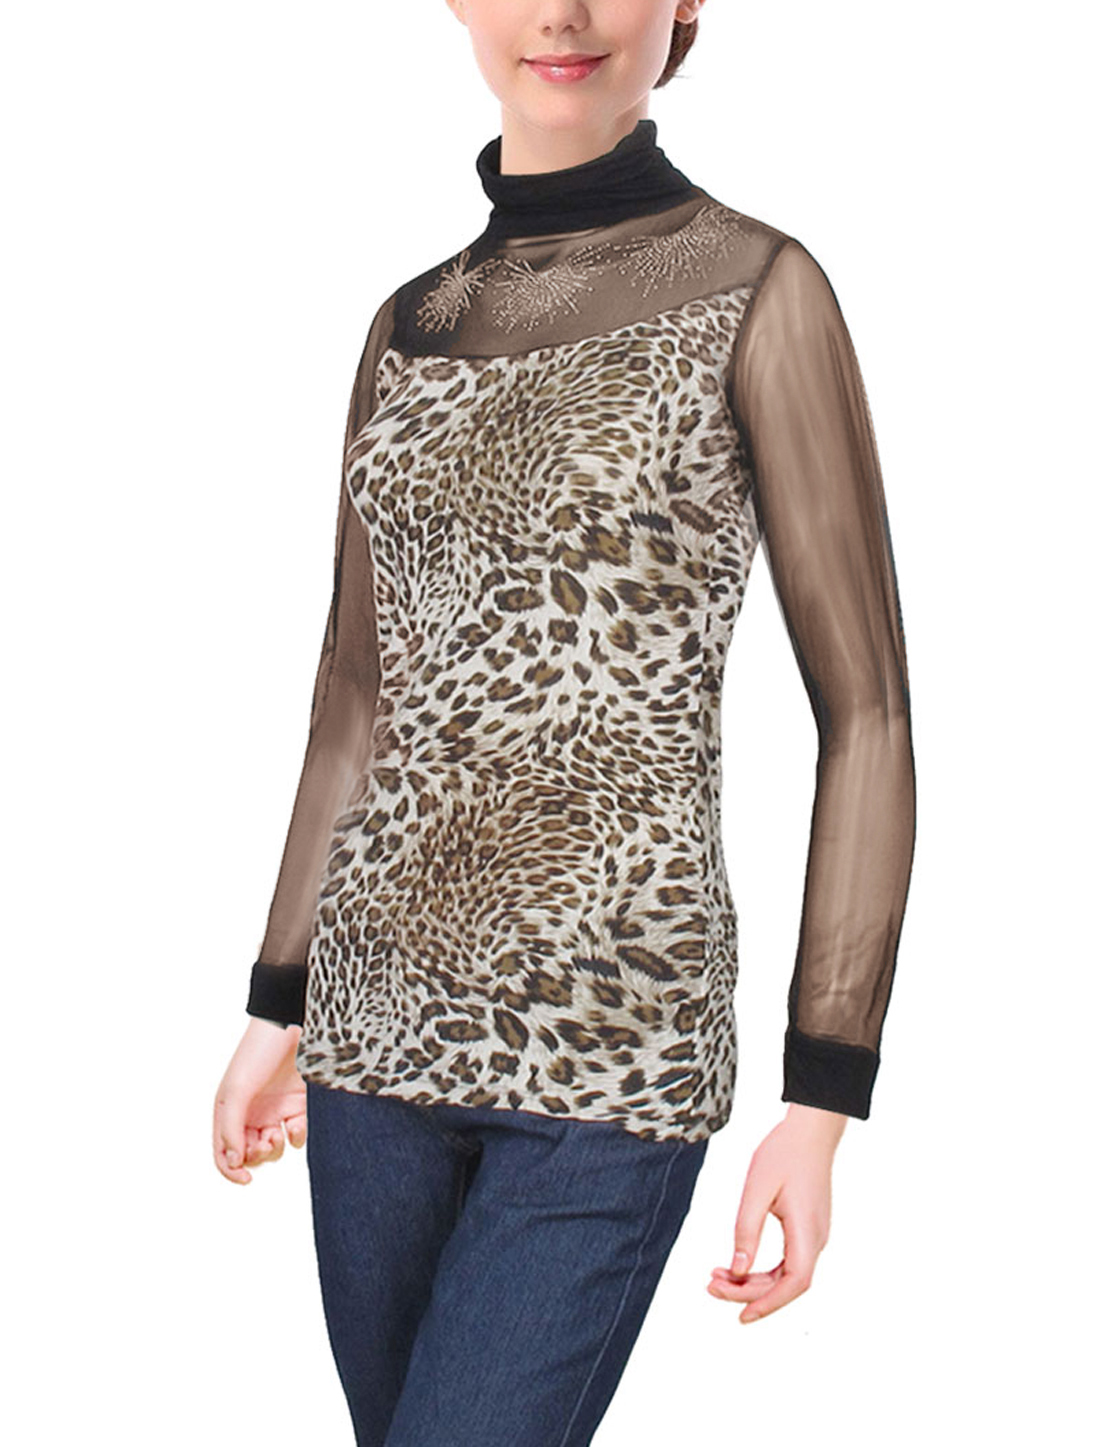 Black Leopard Pattern Long Sleeve Turtle Neck Shirt Tops for Ladies XS